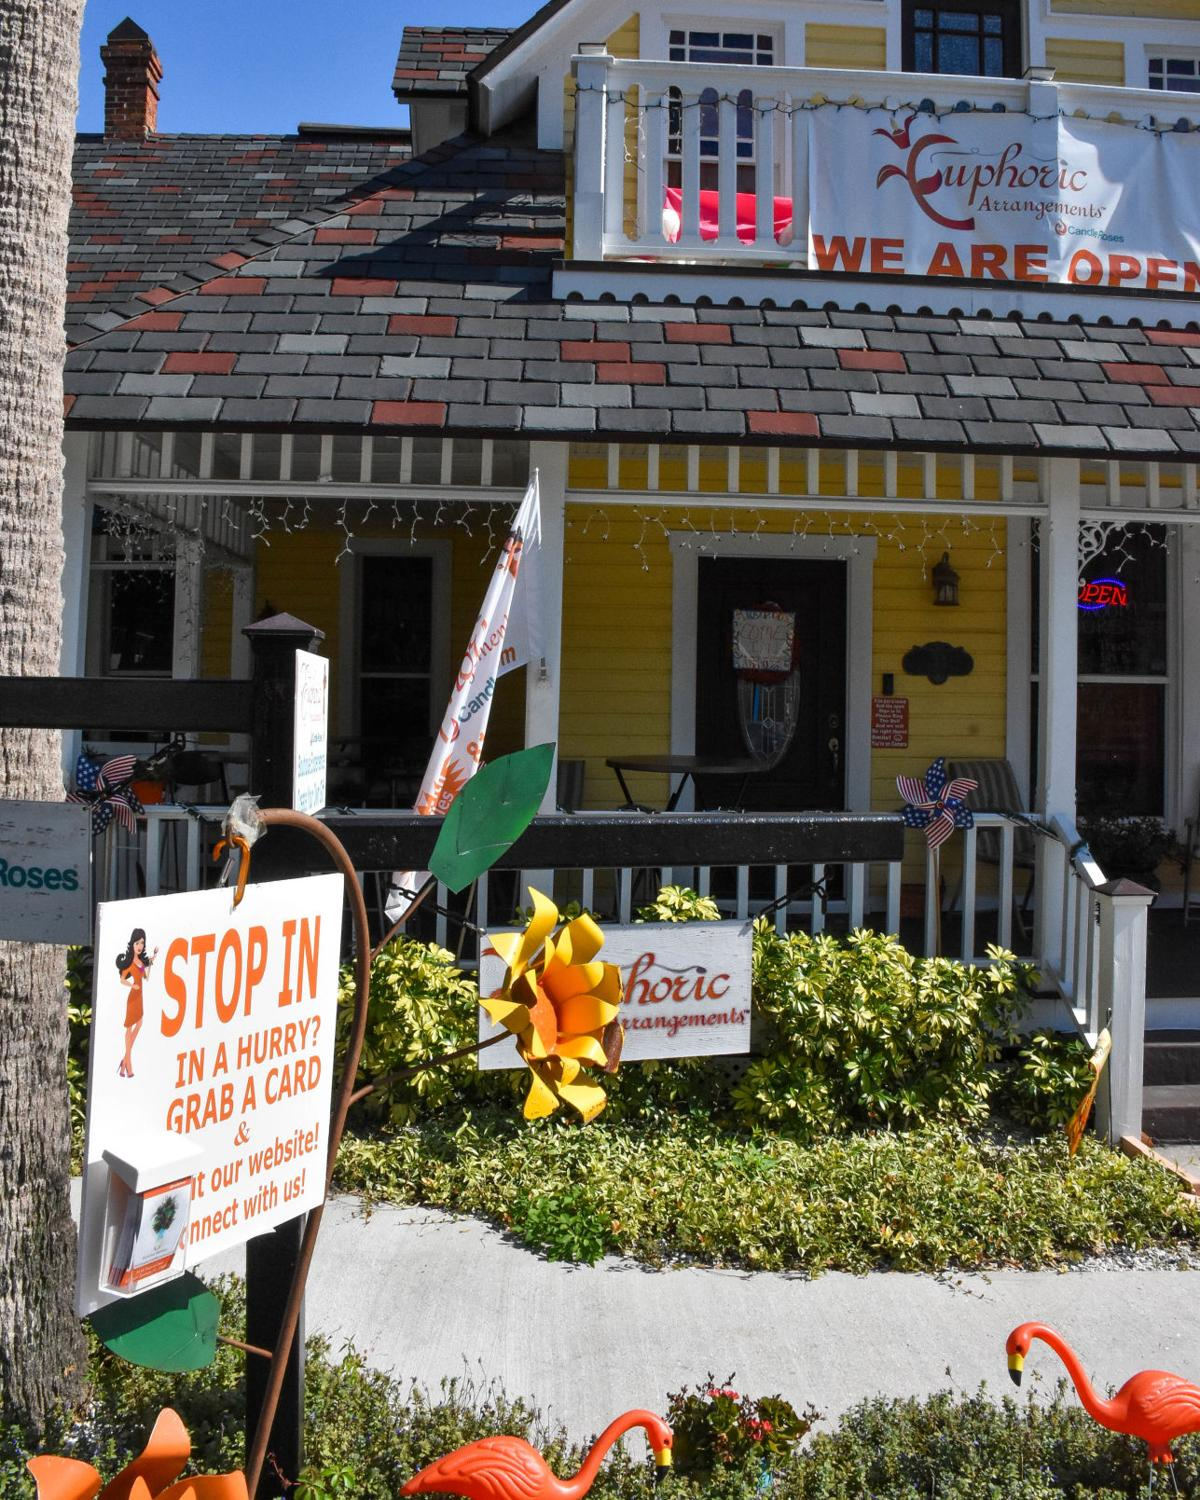 Downtown Classic Coastal Home: Unique Businesses Sprout In Tarpon Springs